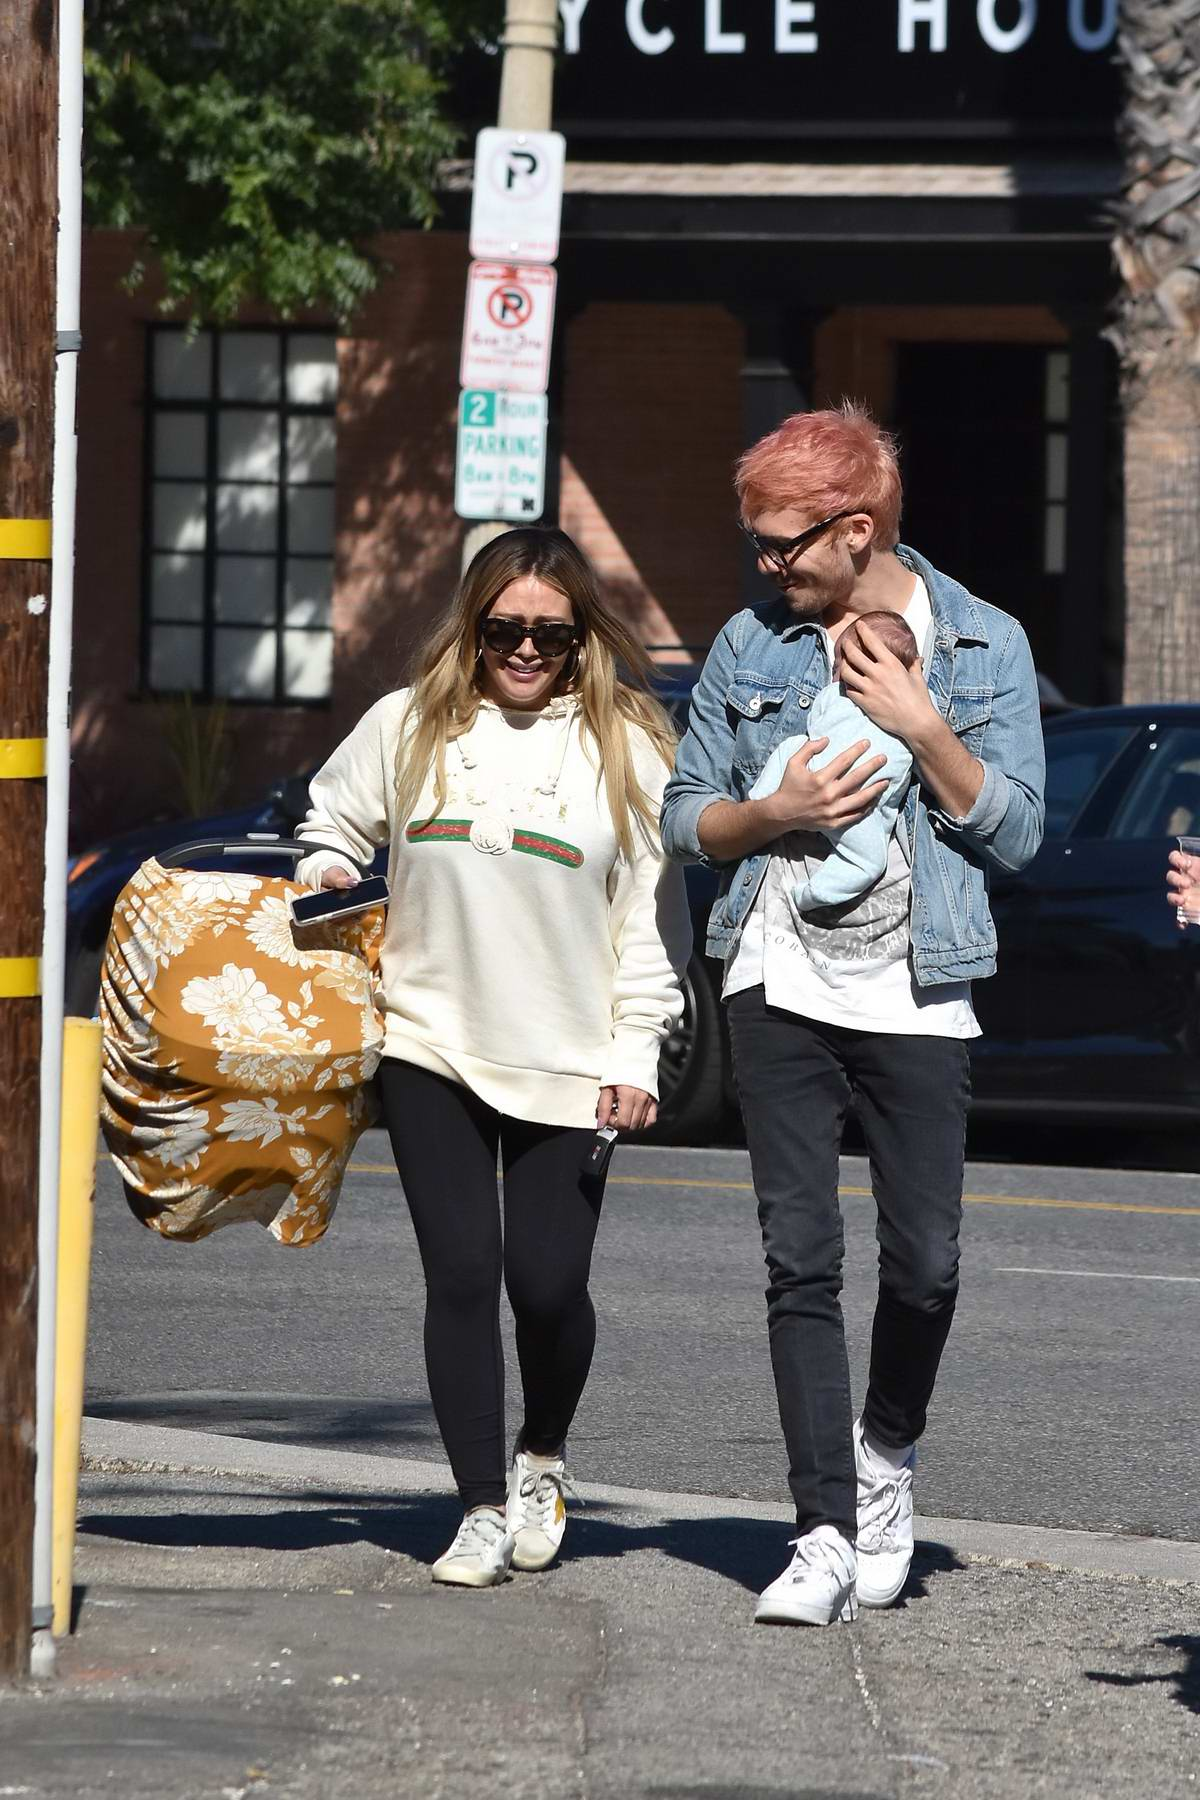 Hilary Duff and Matthew Koma cradles their newborn daughter as they leave after lunch at Joan's on Third in Studio City, Los Angeles